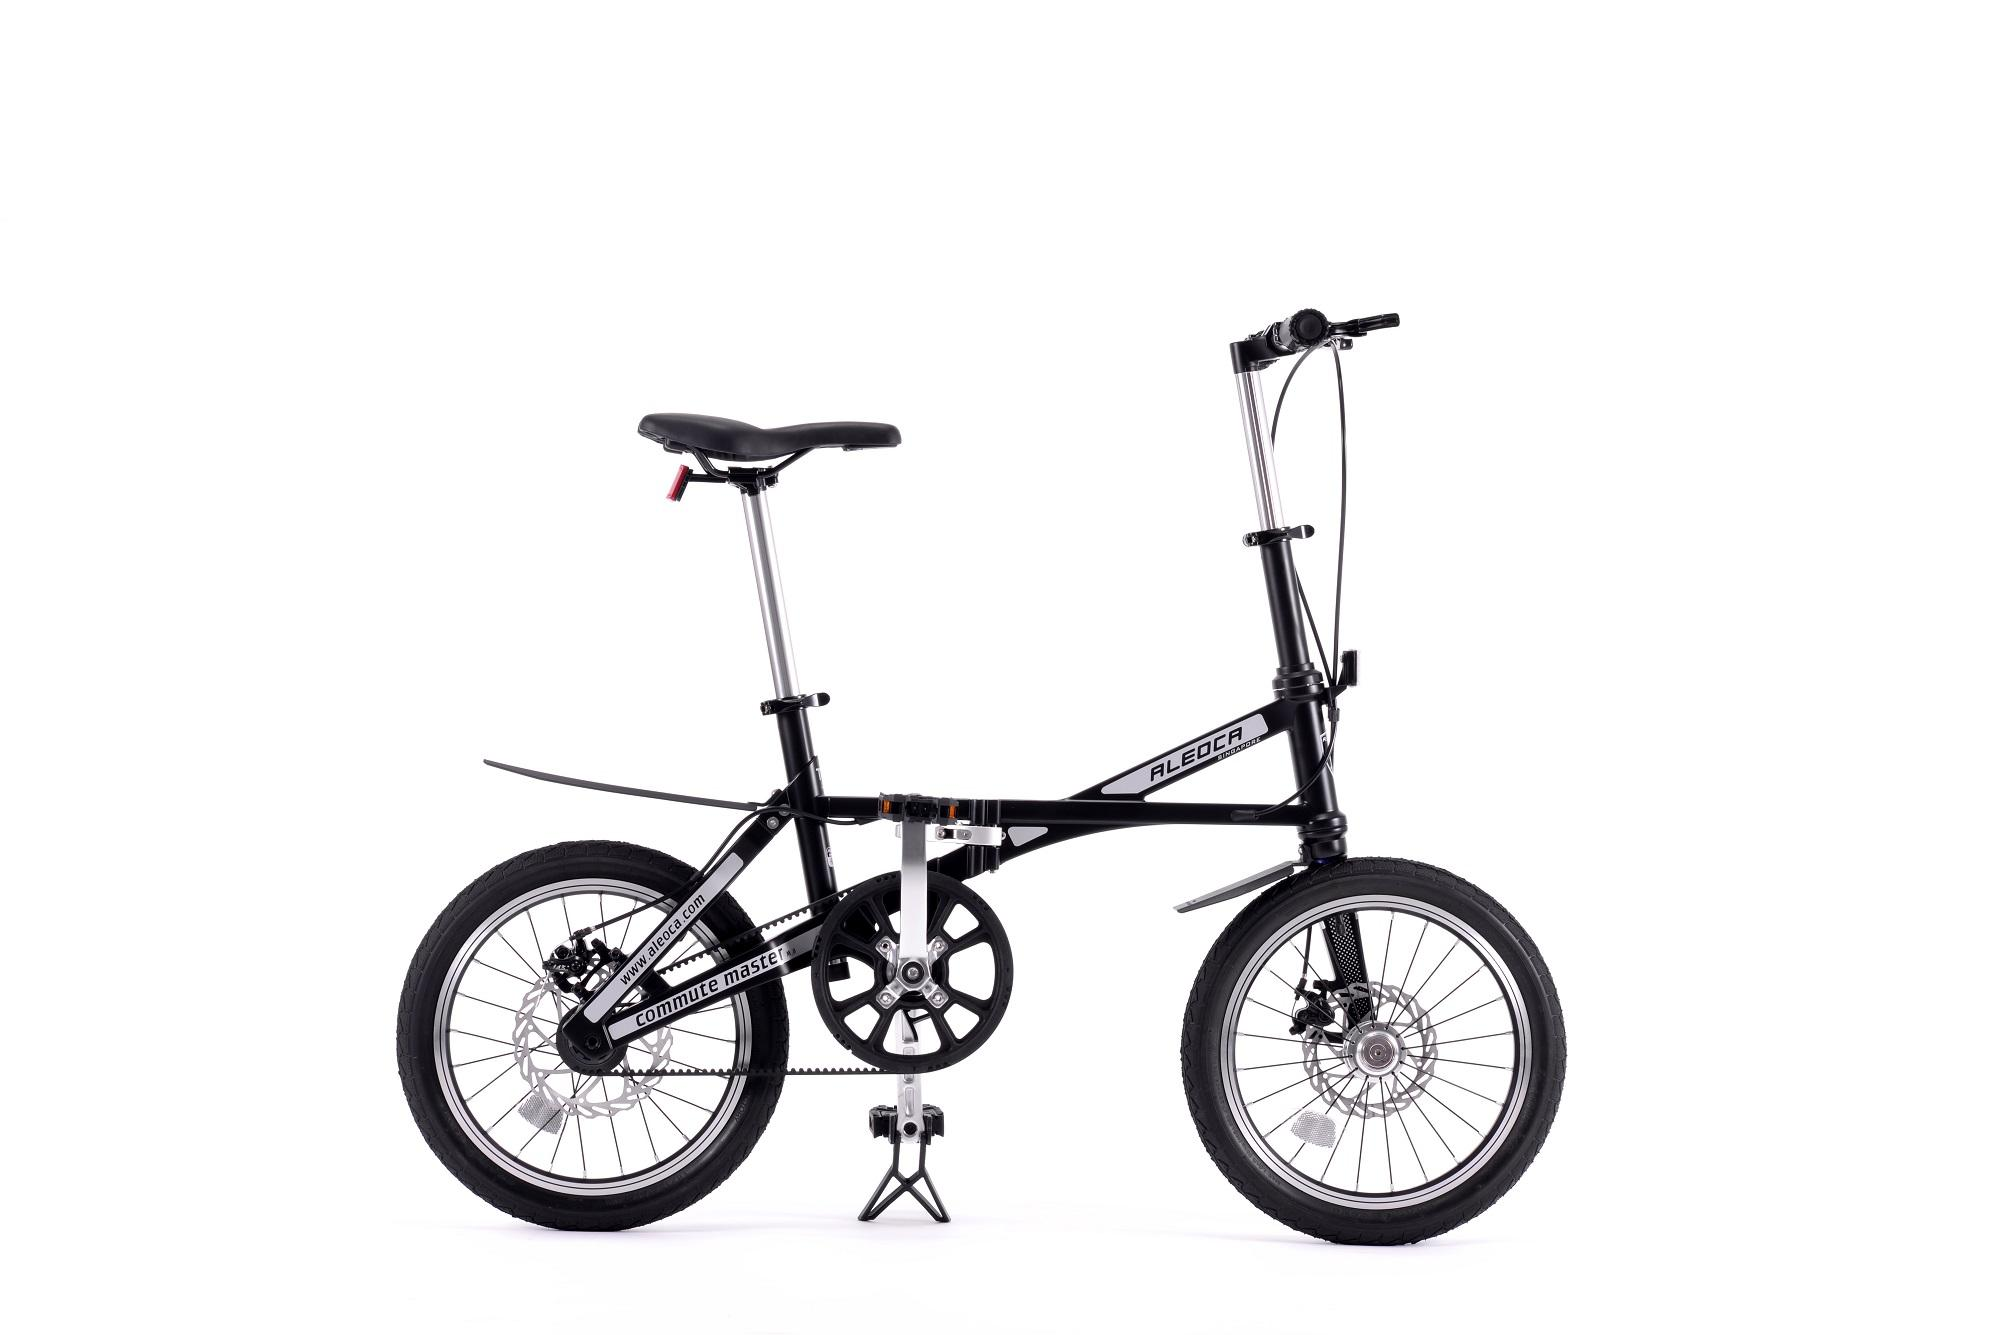 Aleoca 16 Carbon Fiber Folding Bike Commute Master (black) By Aleoca Pro Singapore.